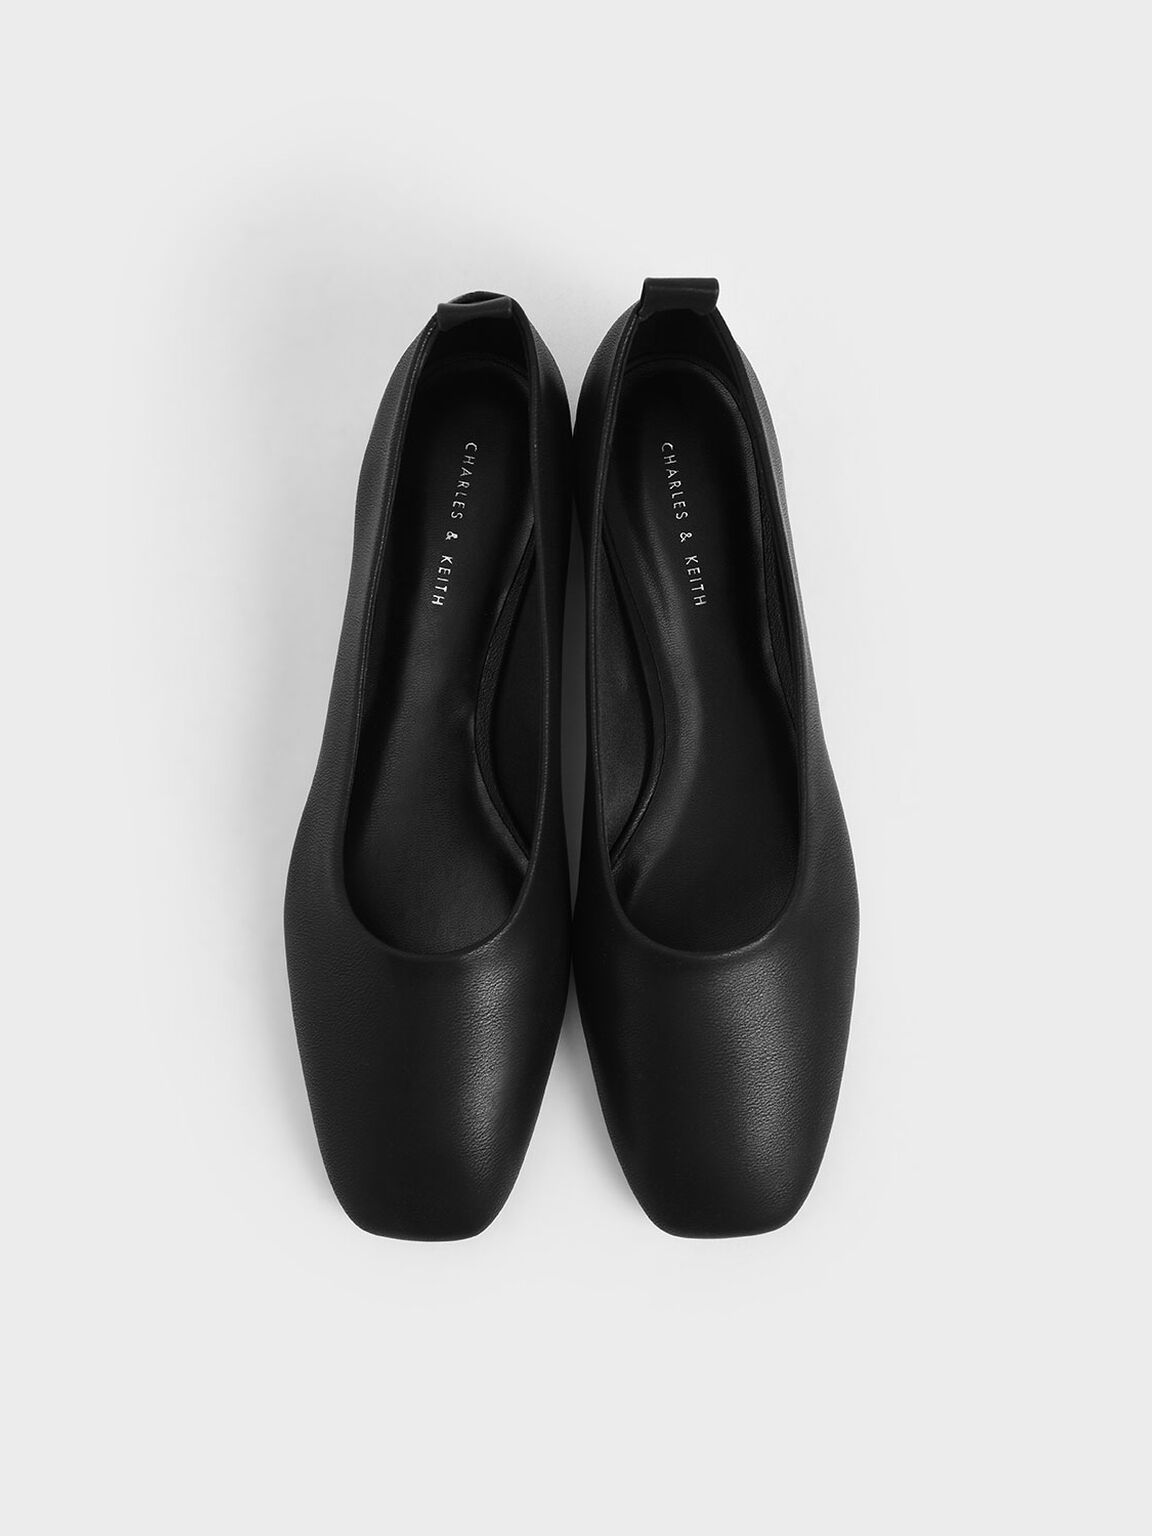 Square Toe Ballerina Flats, Black, hi-res